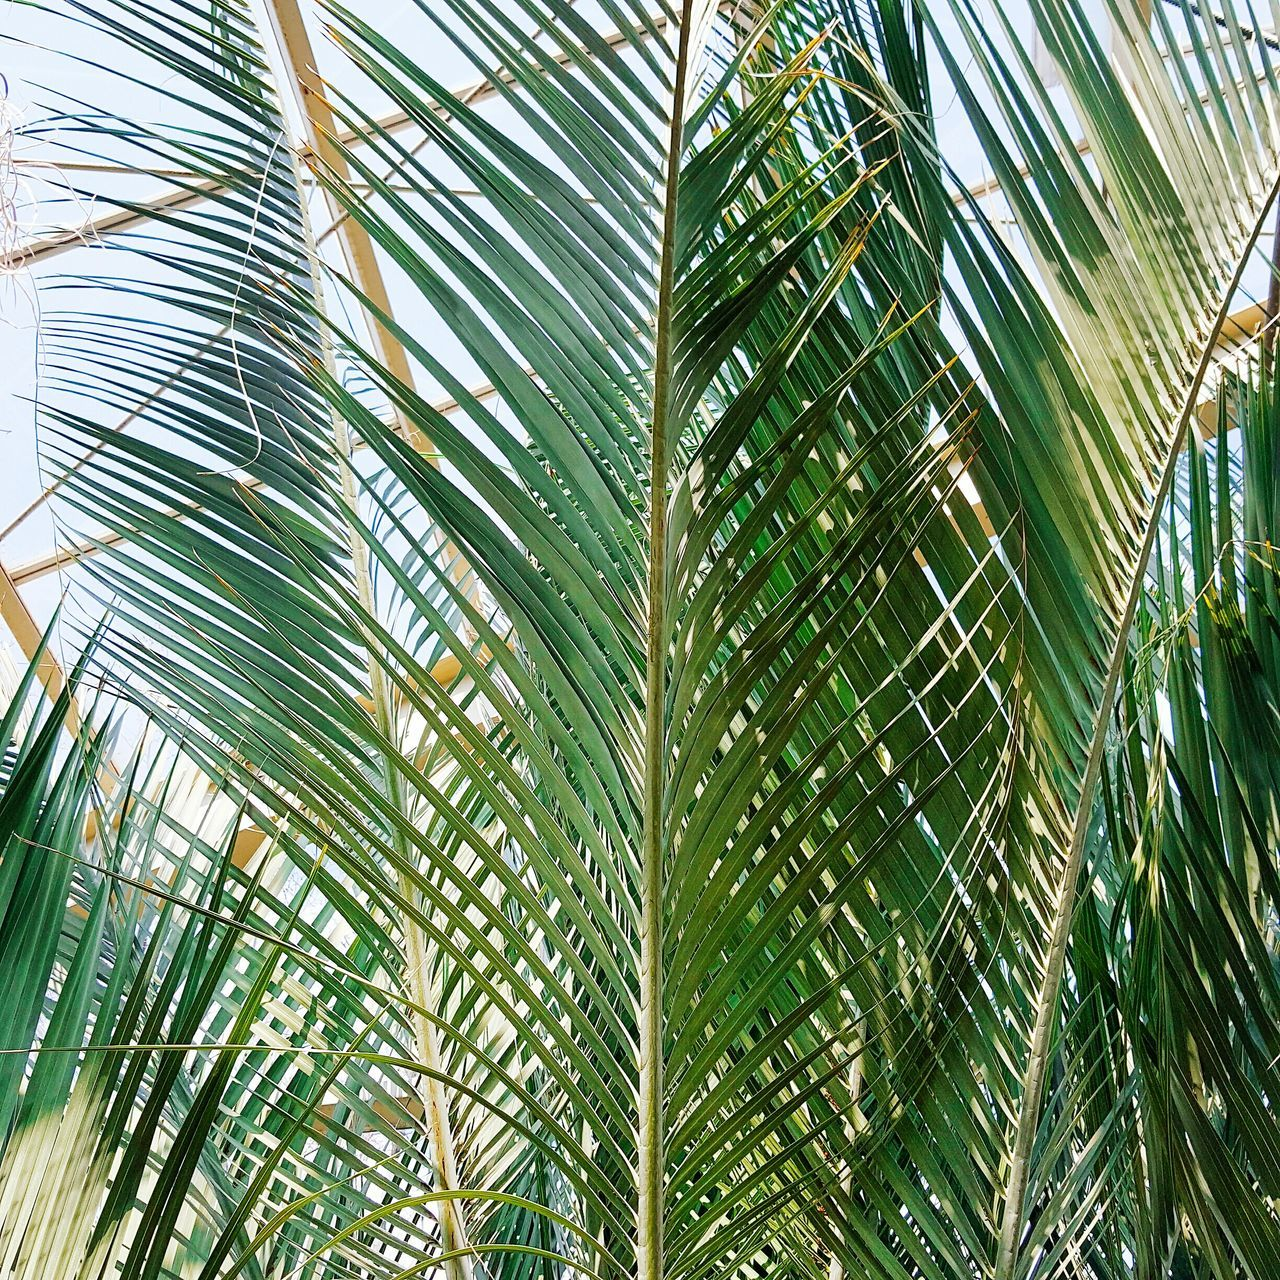 palm leaf, palm tree, nature, green color, frond, leaf, growth, beauty in nature, tree, day, full frame, plant, no people, low angle view, close-up, outdoors, bamboo - plant, backgrounds, bamboo grove, sky, freshness, fanned out